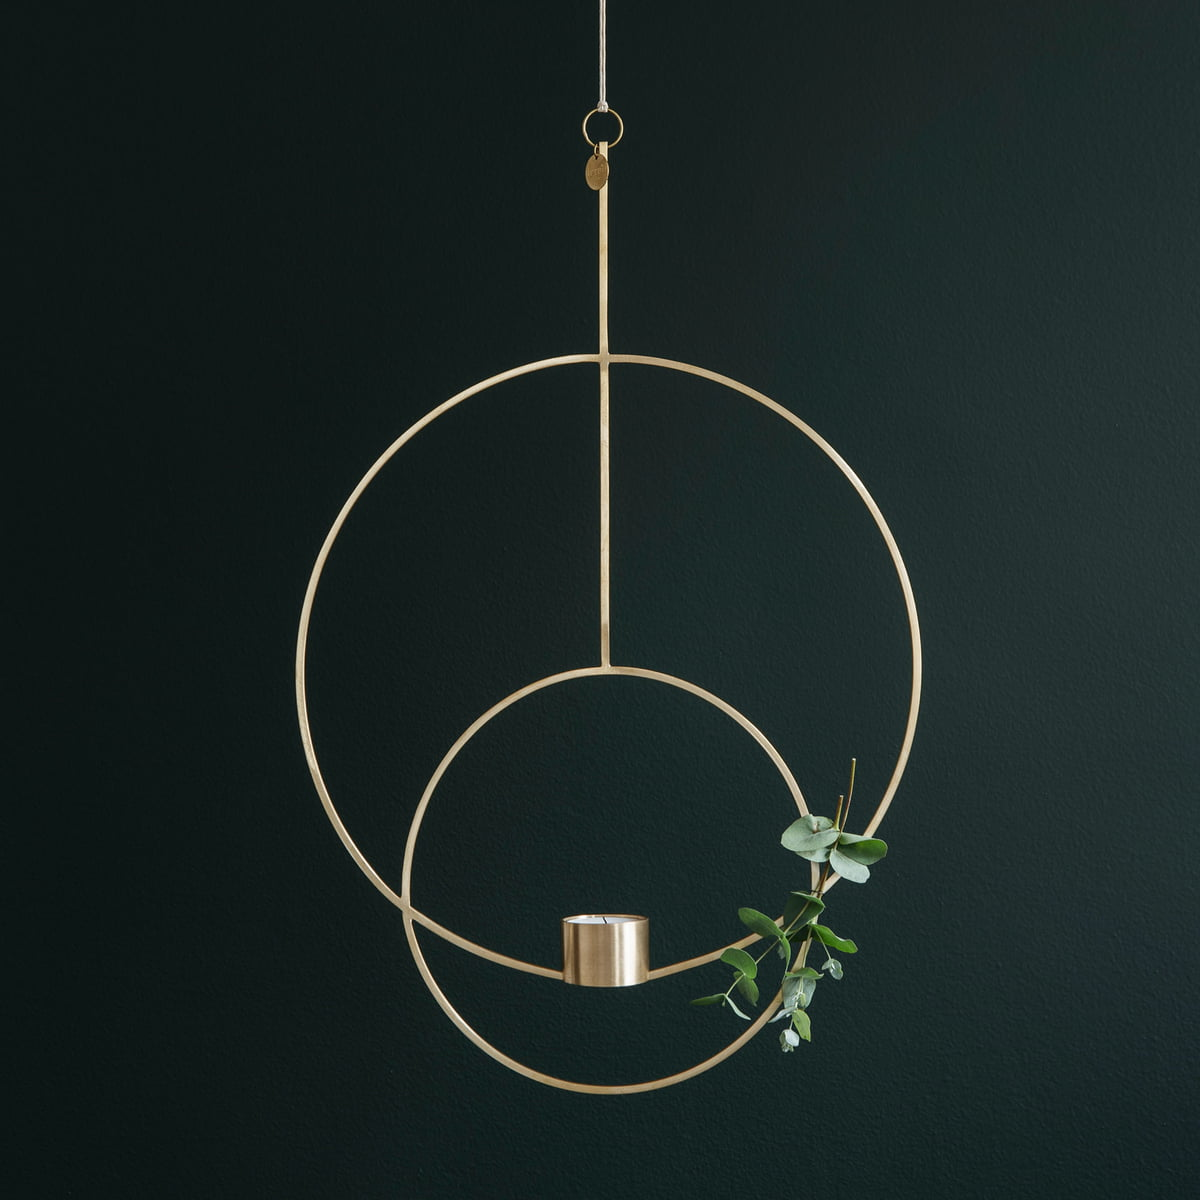 Hanging tealight holder by ferm living round hanging tealight holder by ferm living aloadofball Choice Image